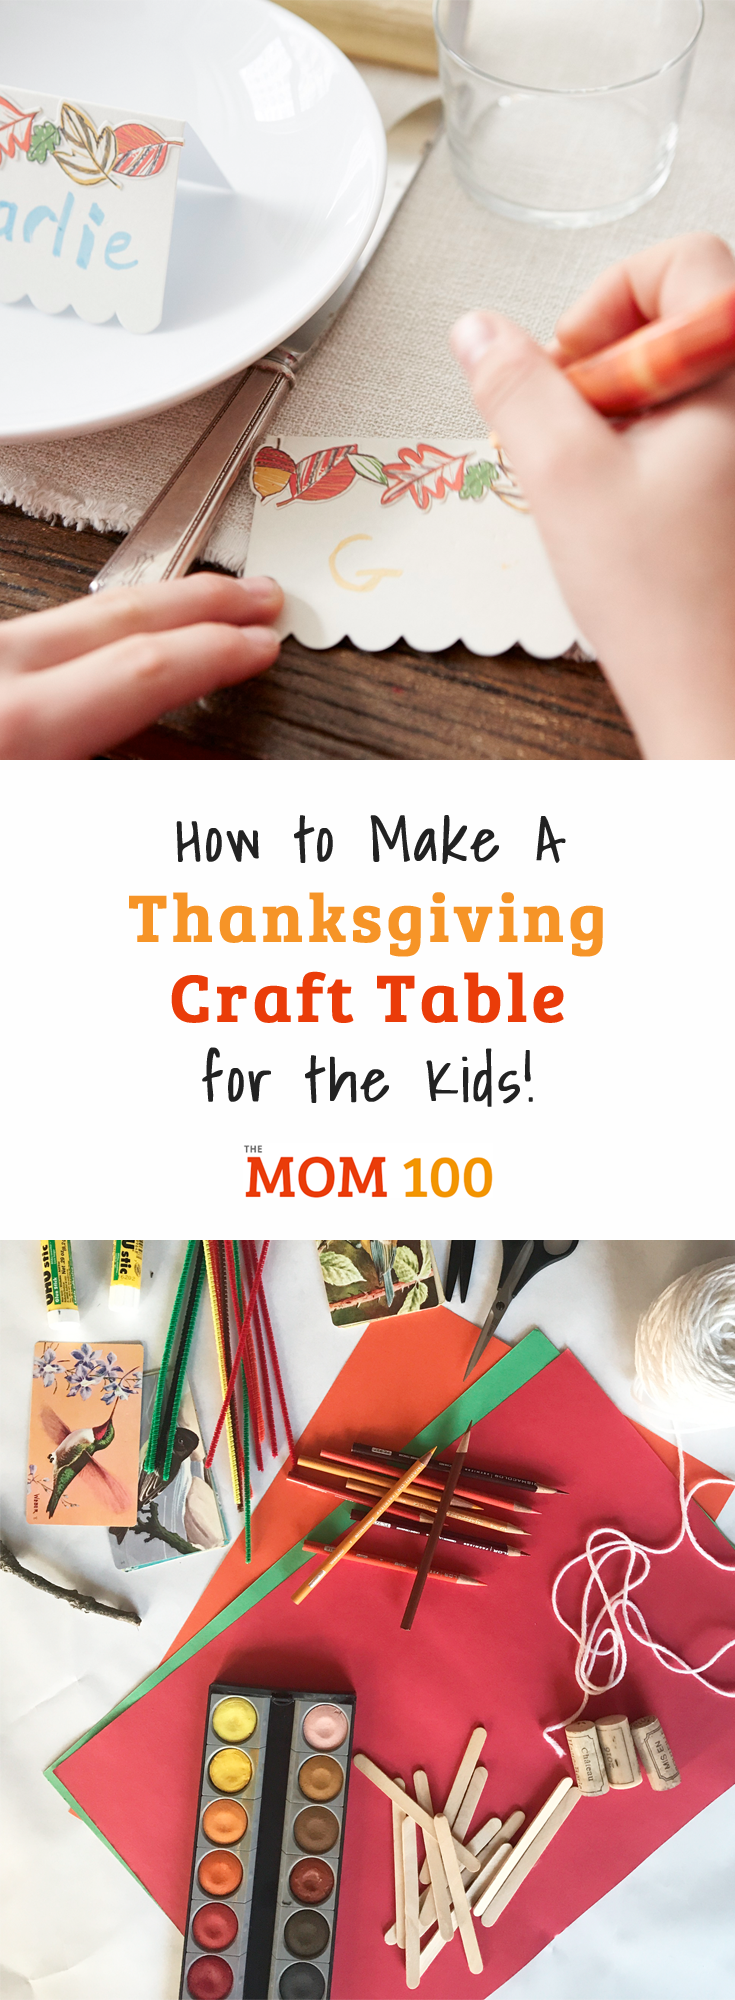 Put together a Fun Thanksgiving Craft Table for the Kids where they can keep themselves occupied and craft to their hearts\' content.